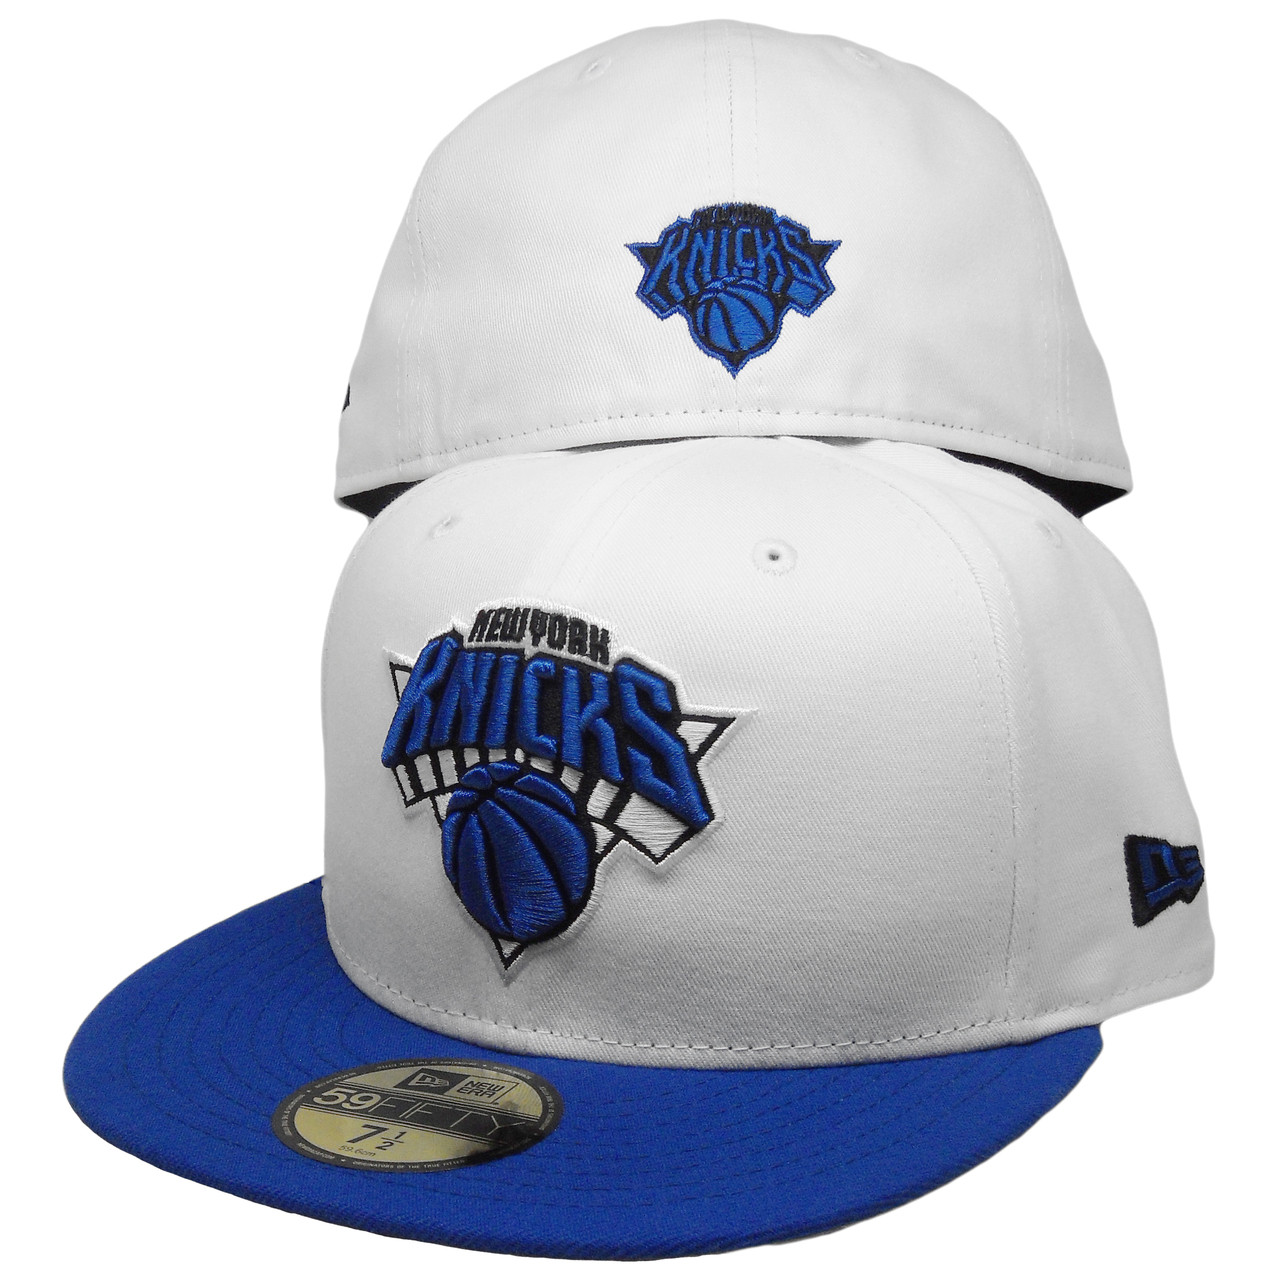 New York Knicks Custom New Era 59Fifty Fitted Hat - White f6b0ec01791